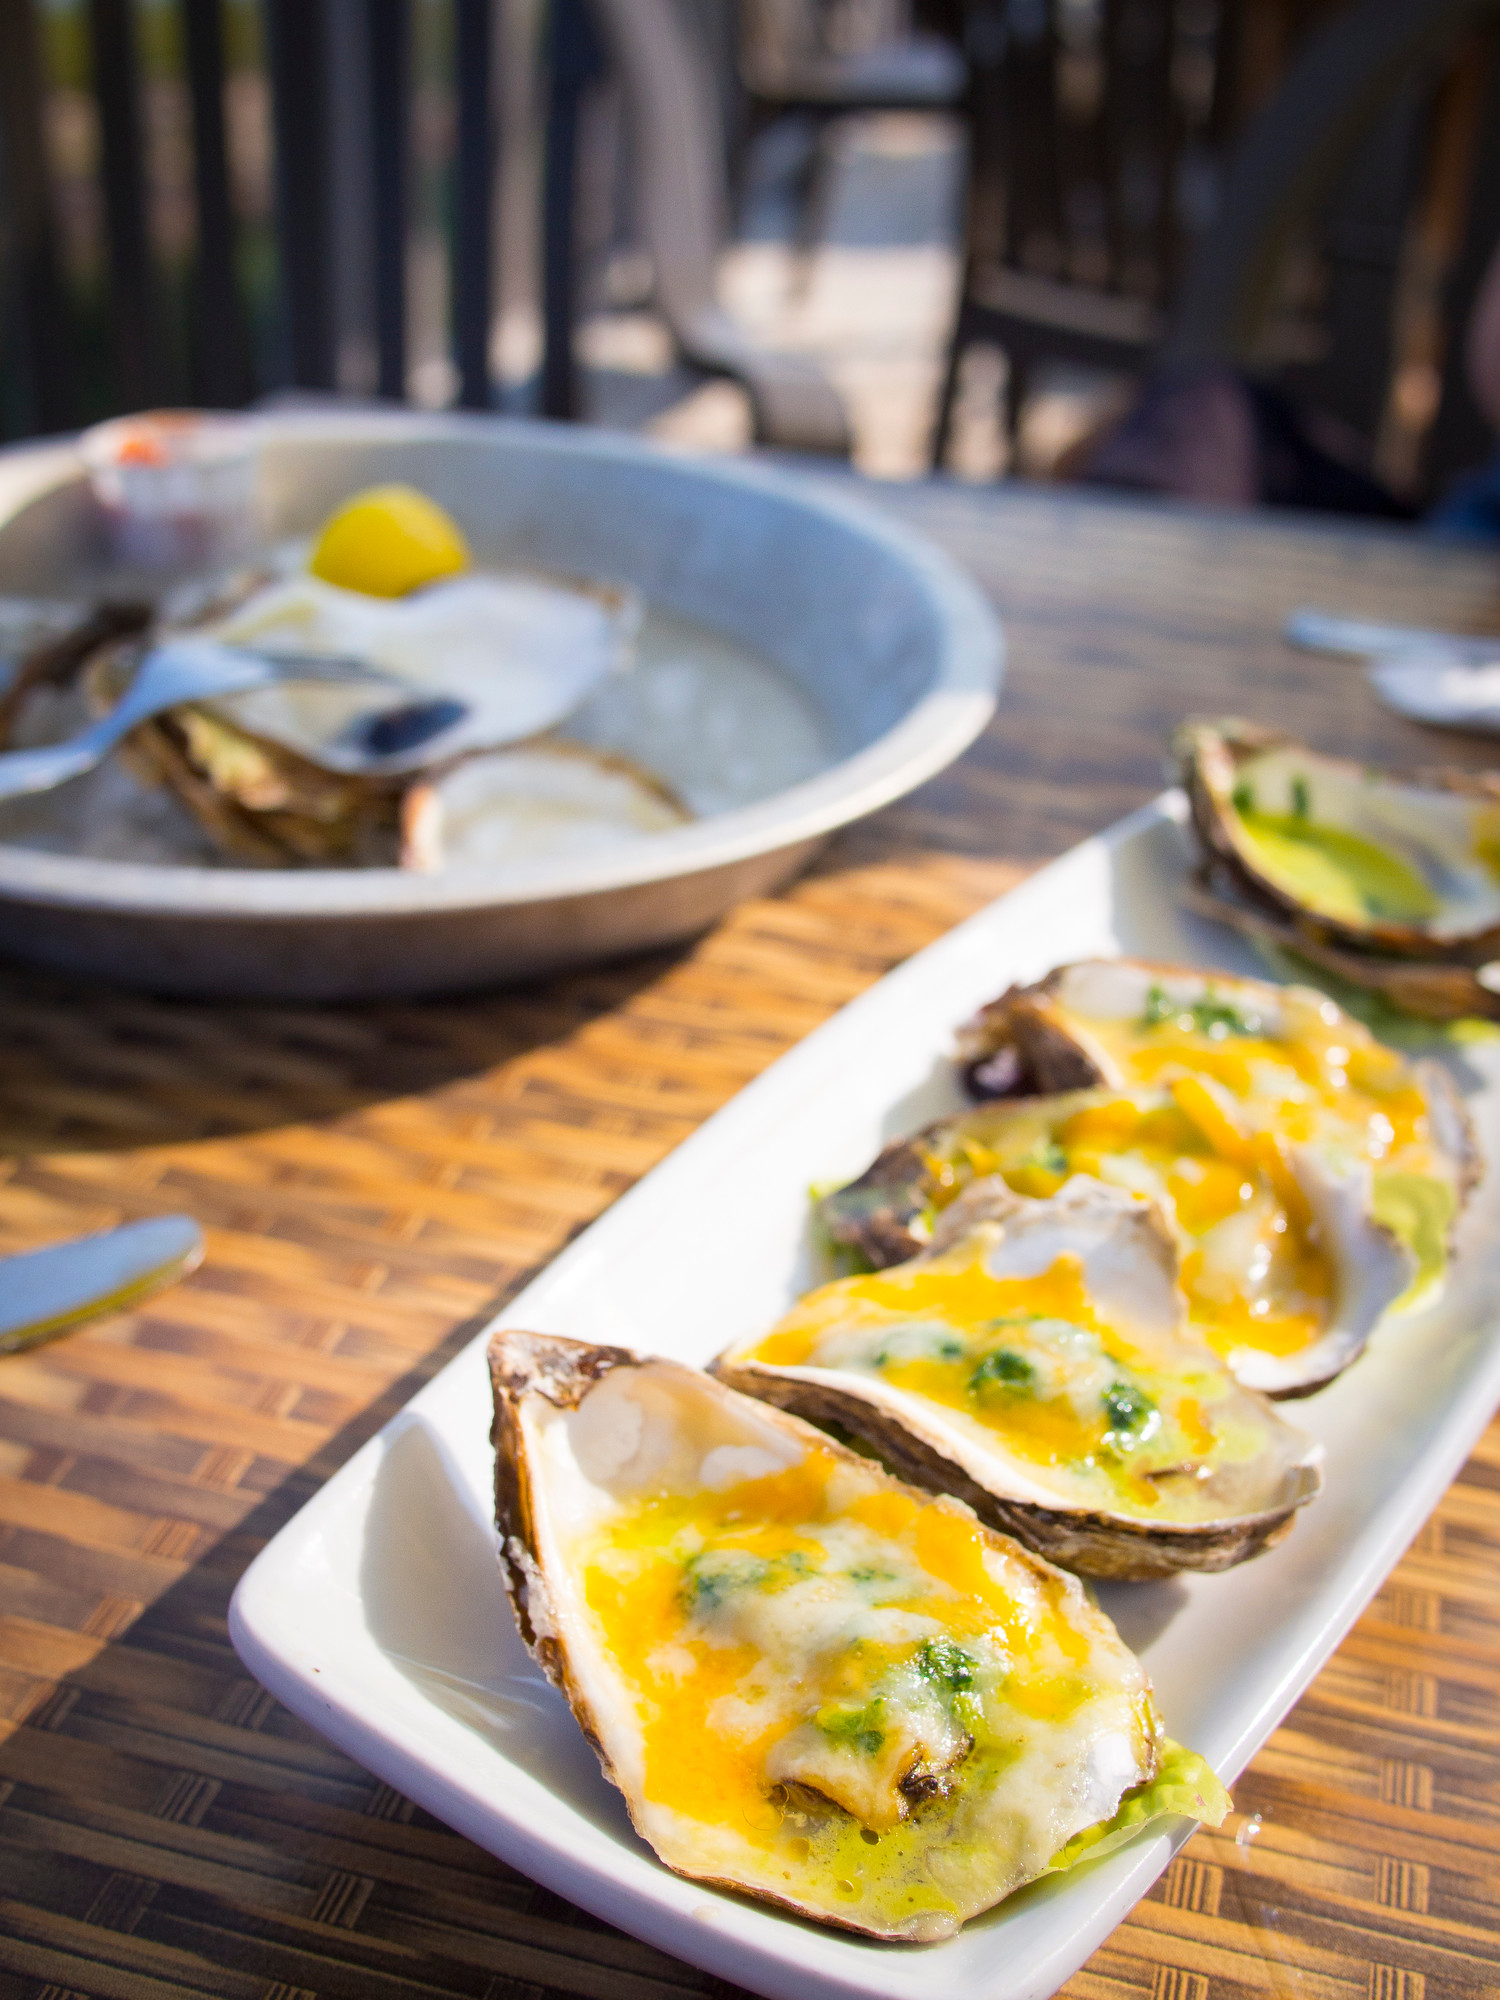 Where to Eat in PEI: Carr's Oyster Bar in New London has a great view and wide selection of oysters.